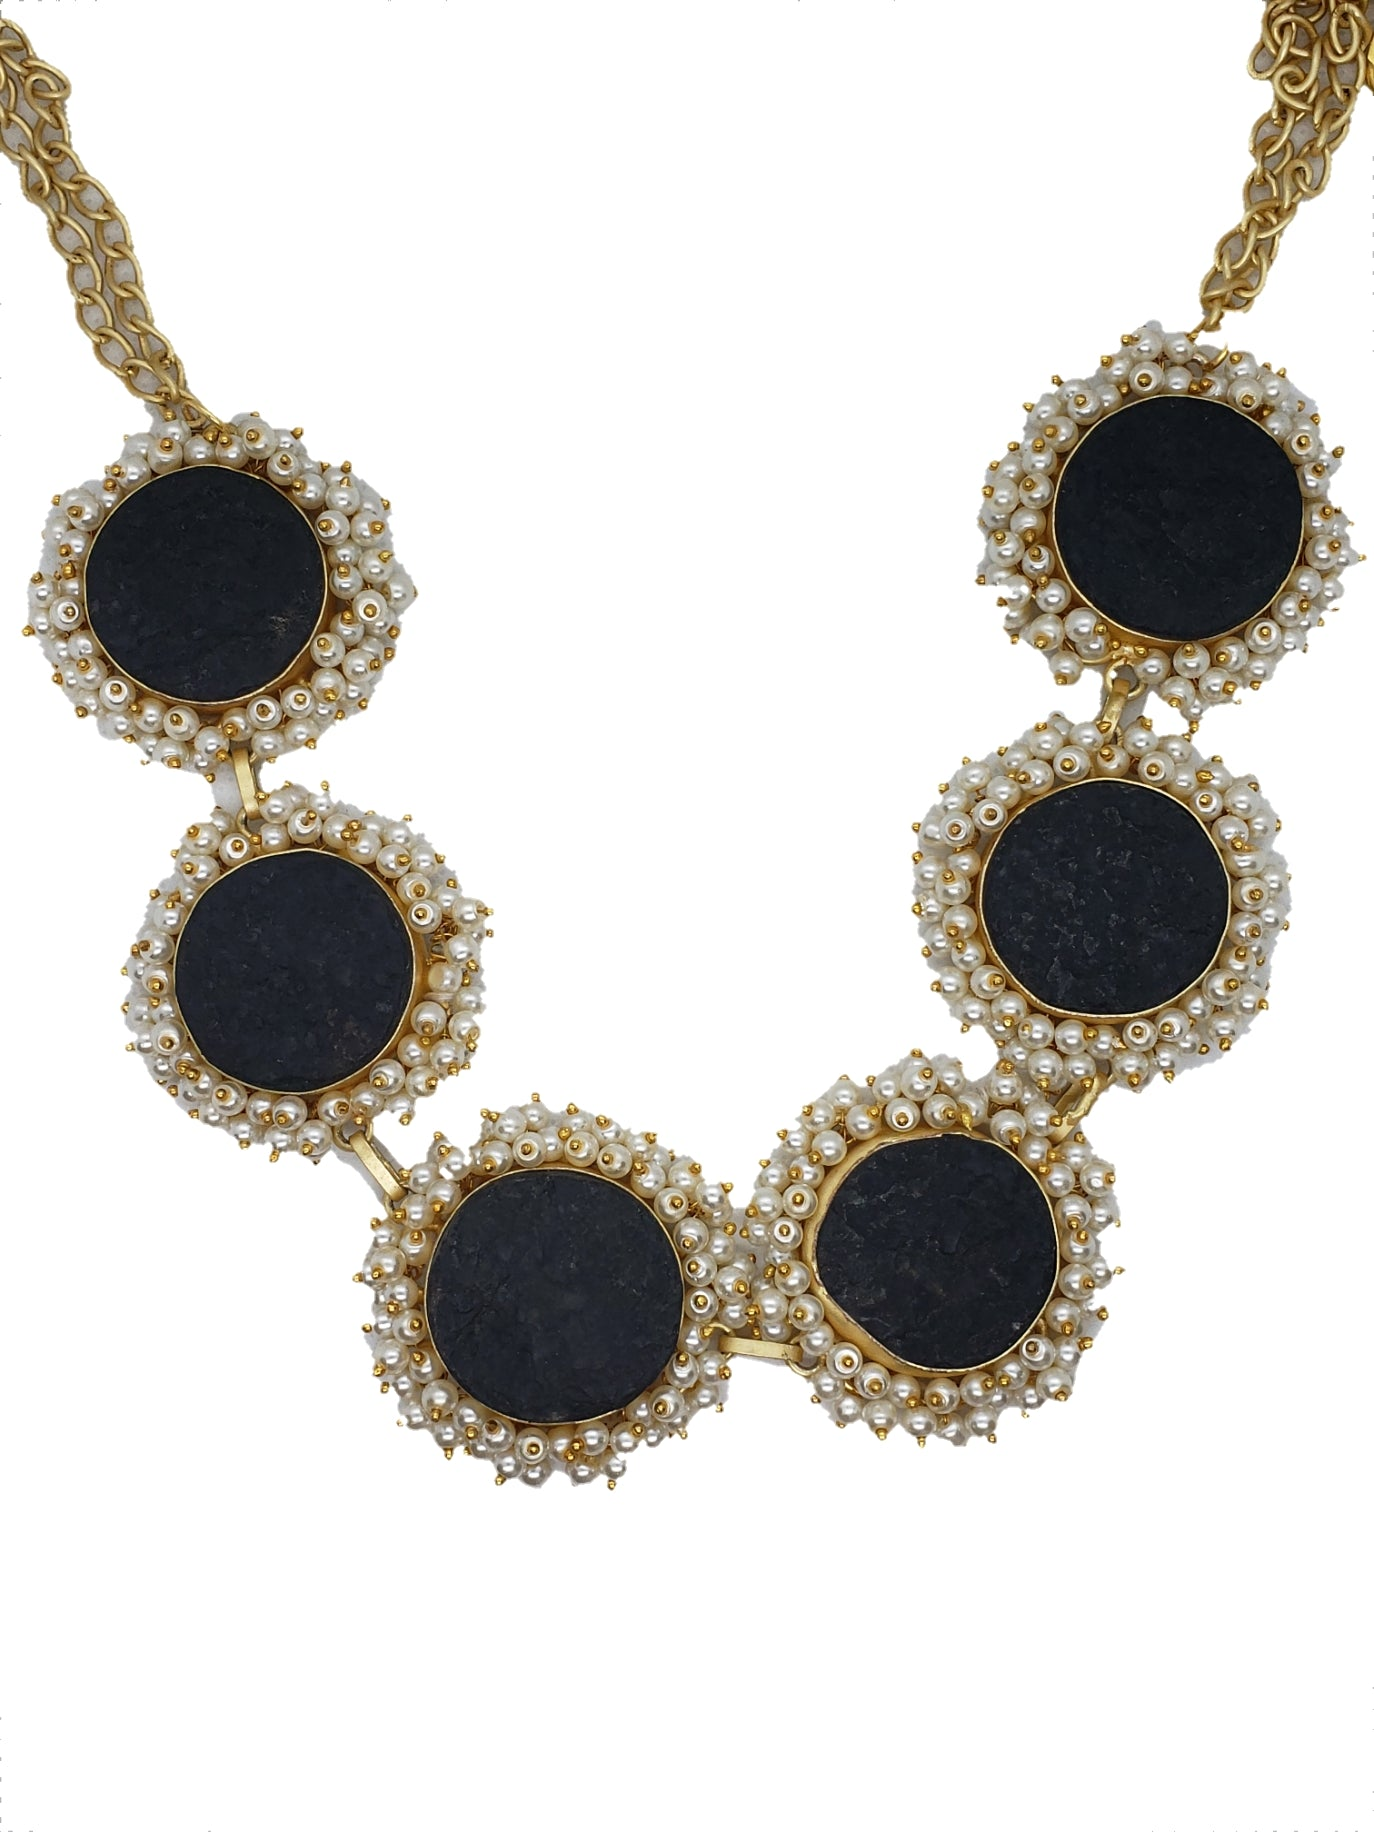 Obsidian Stone Necklace - The Bauble Shop